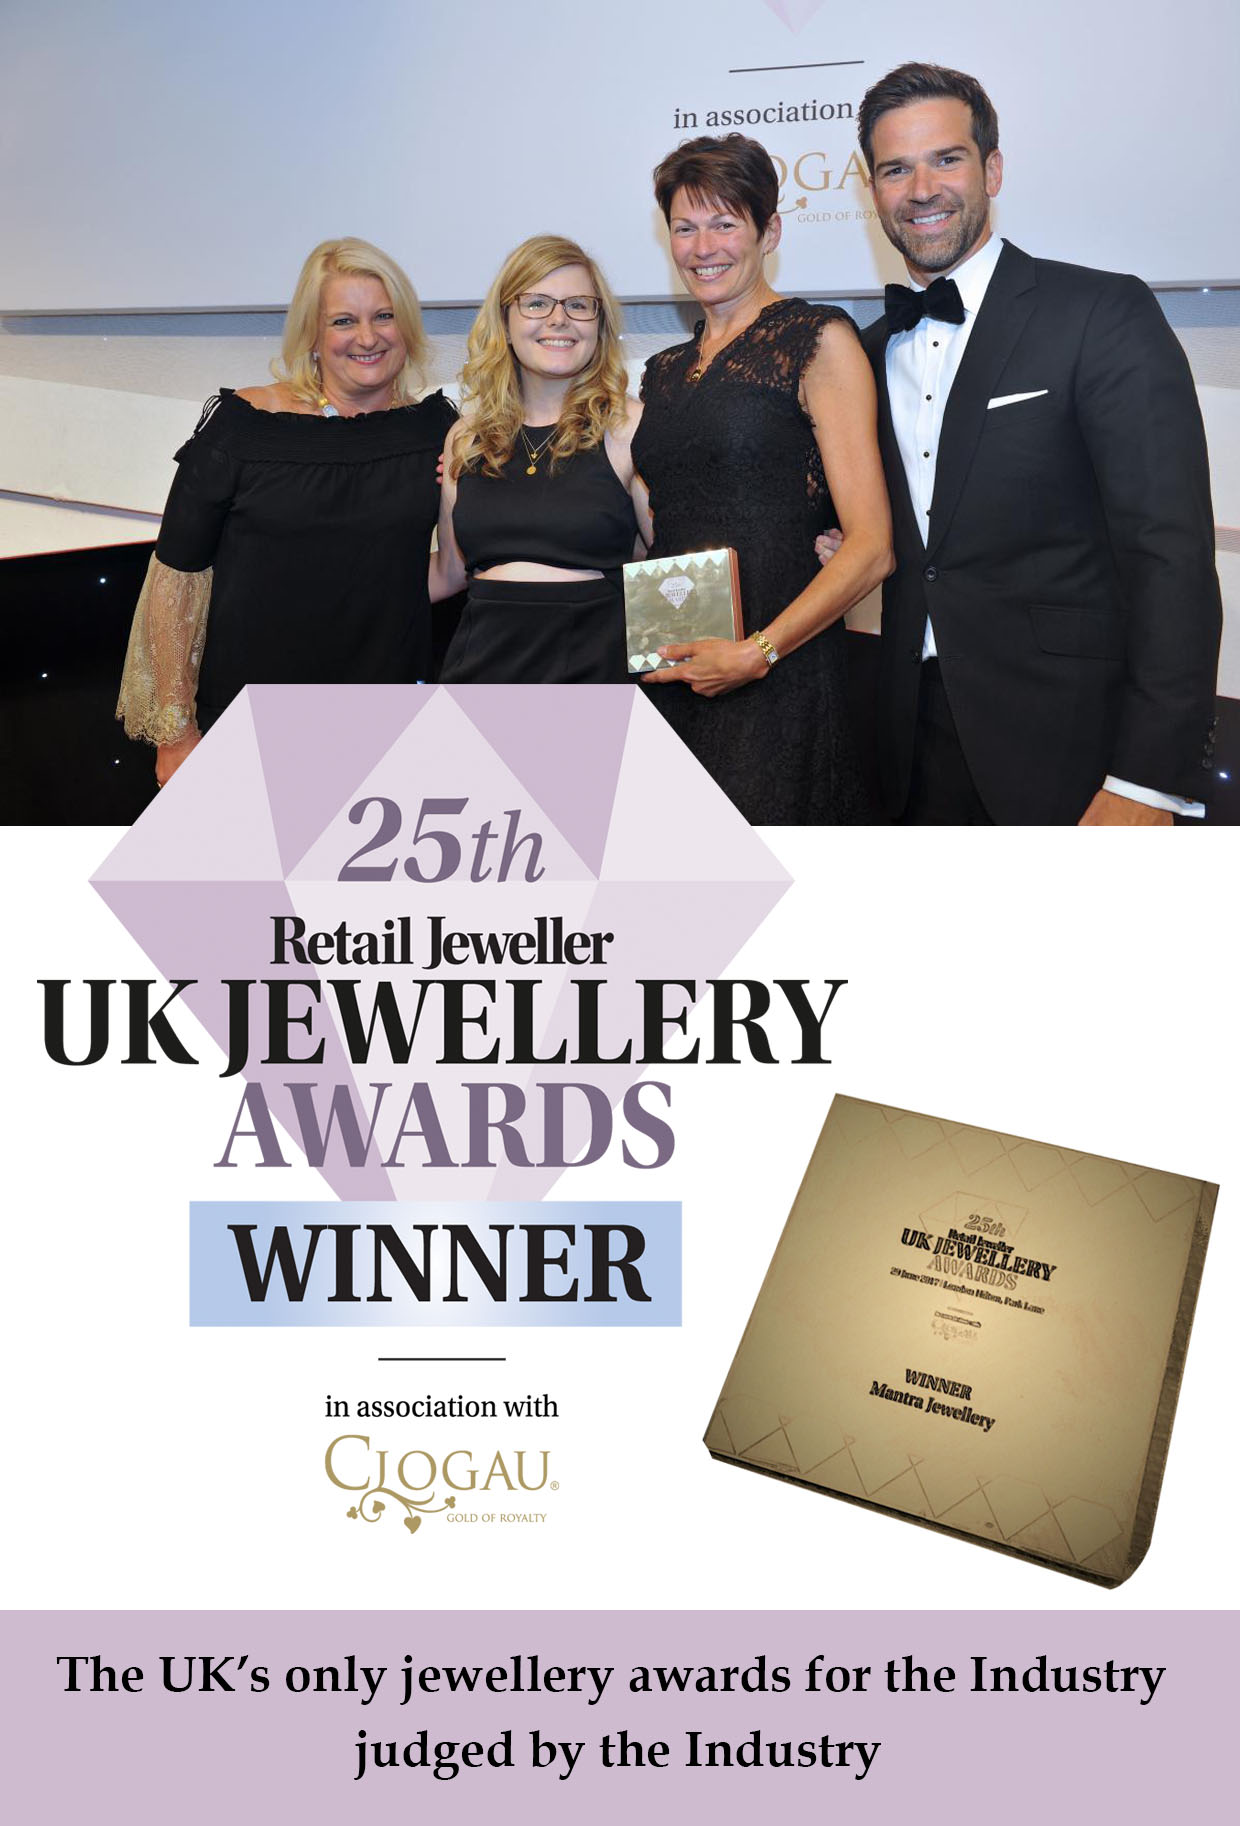 Mantra Jewellery won the 'Brands to Watch' award at the 25th Retail Jeweller UK Jewellery Awards 2017